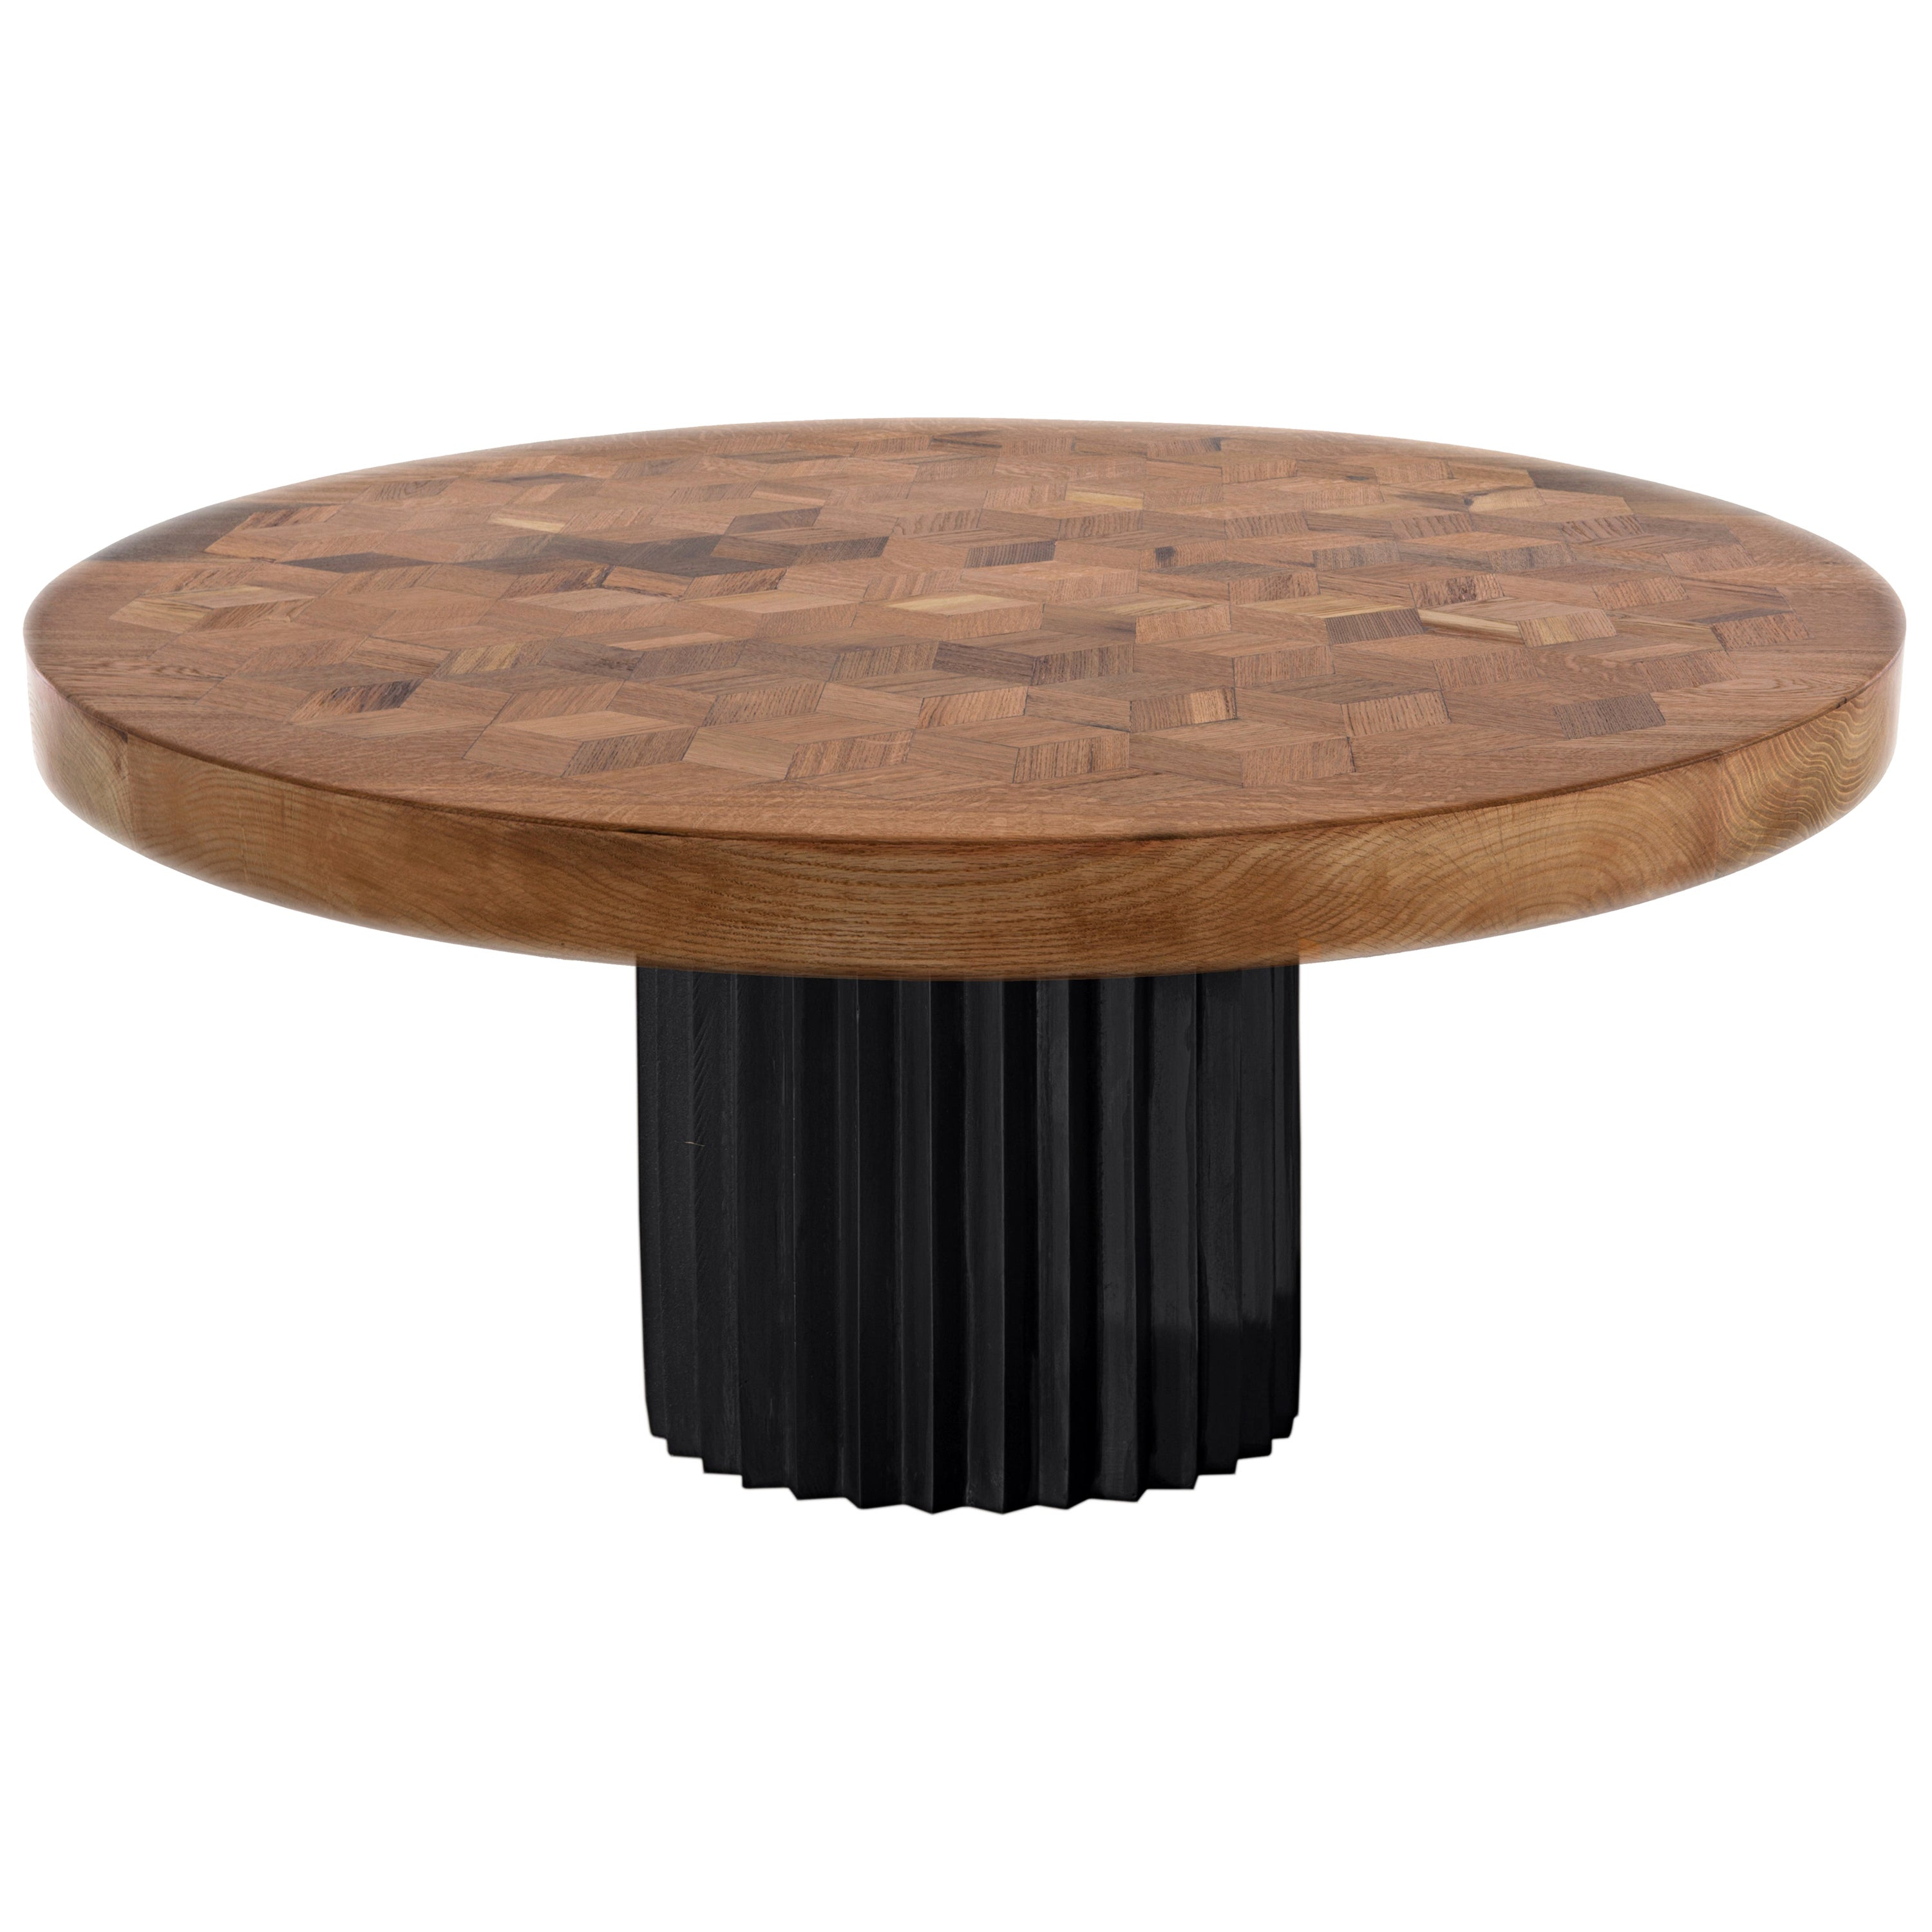 Doris Round Marquetry Table in Reclaimed Oak with Cast Blackened Bronze Pedestal